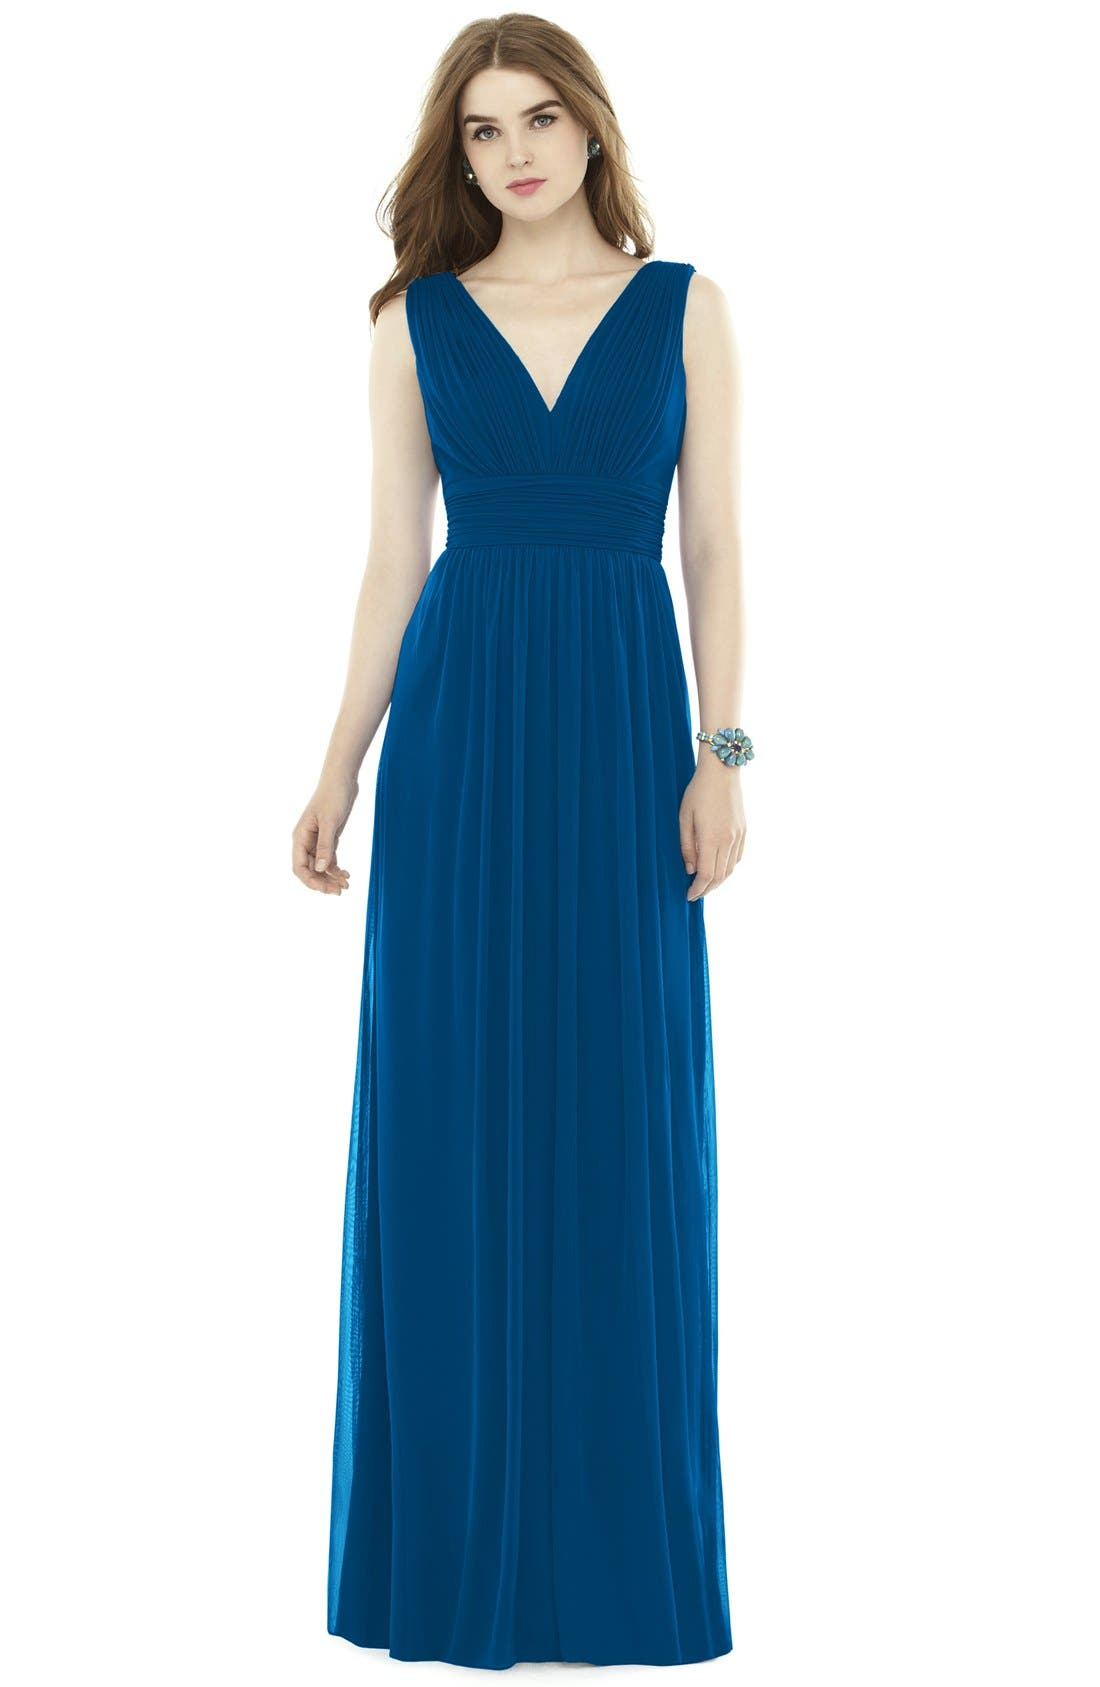 Alternate Image 1 Selected - Alfred Sung V-Neck Pleat Chiffon Knit A-Line Gown